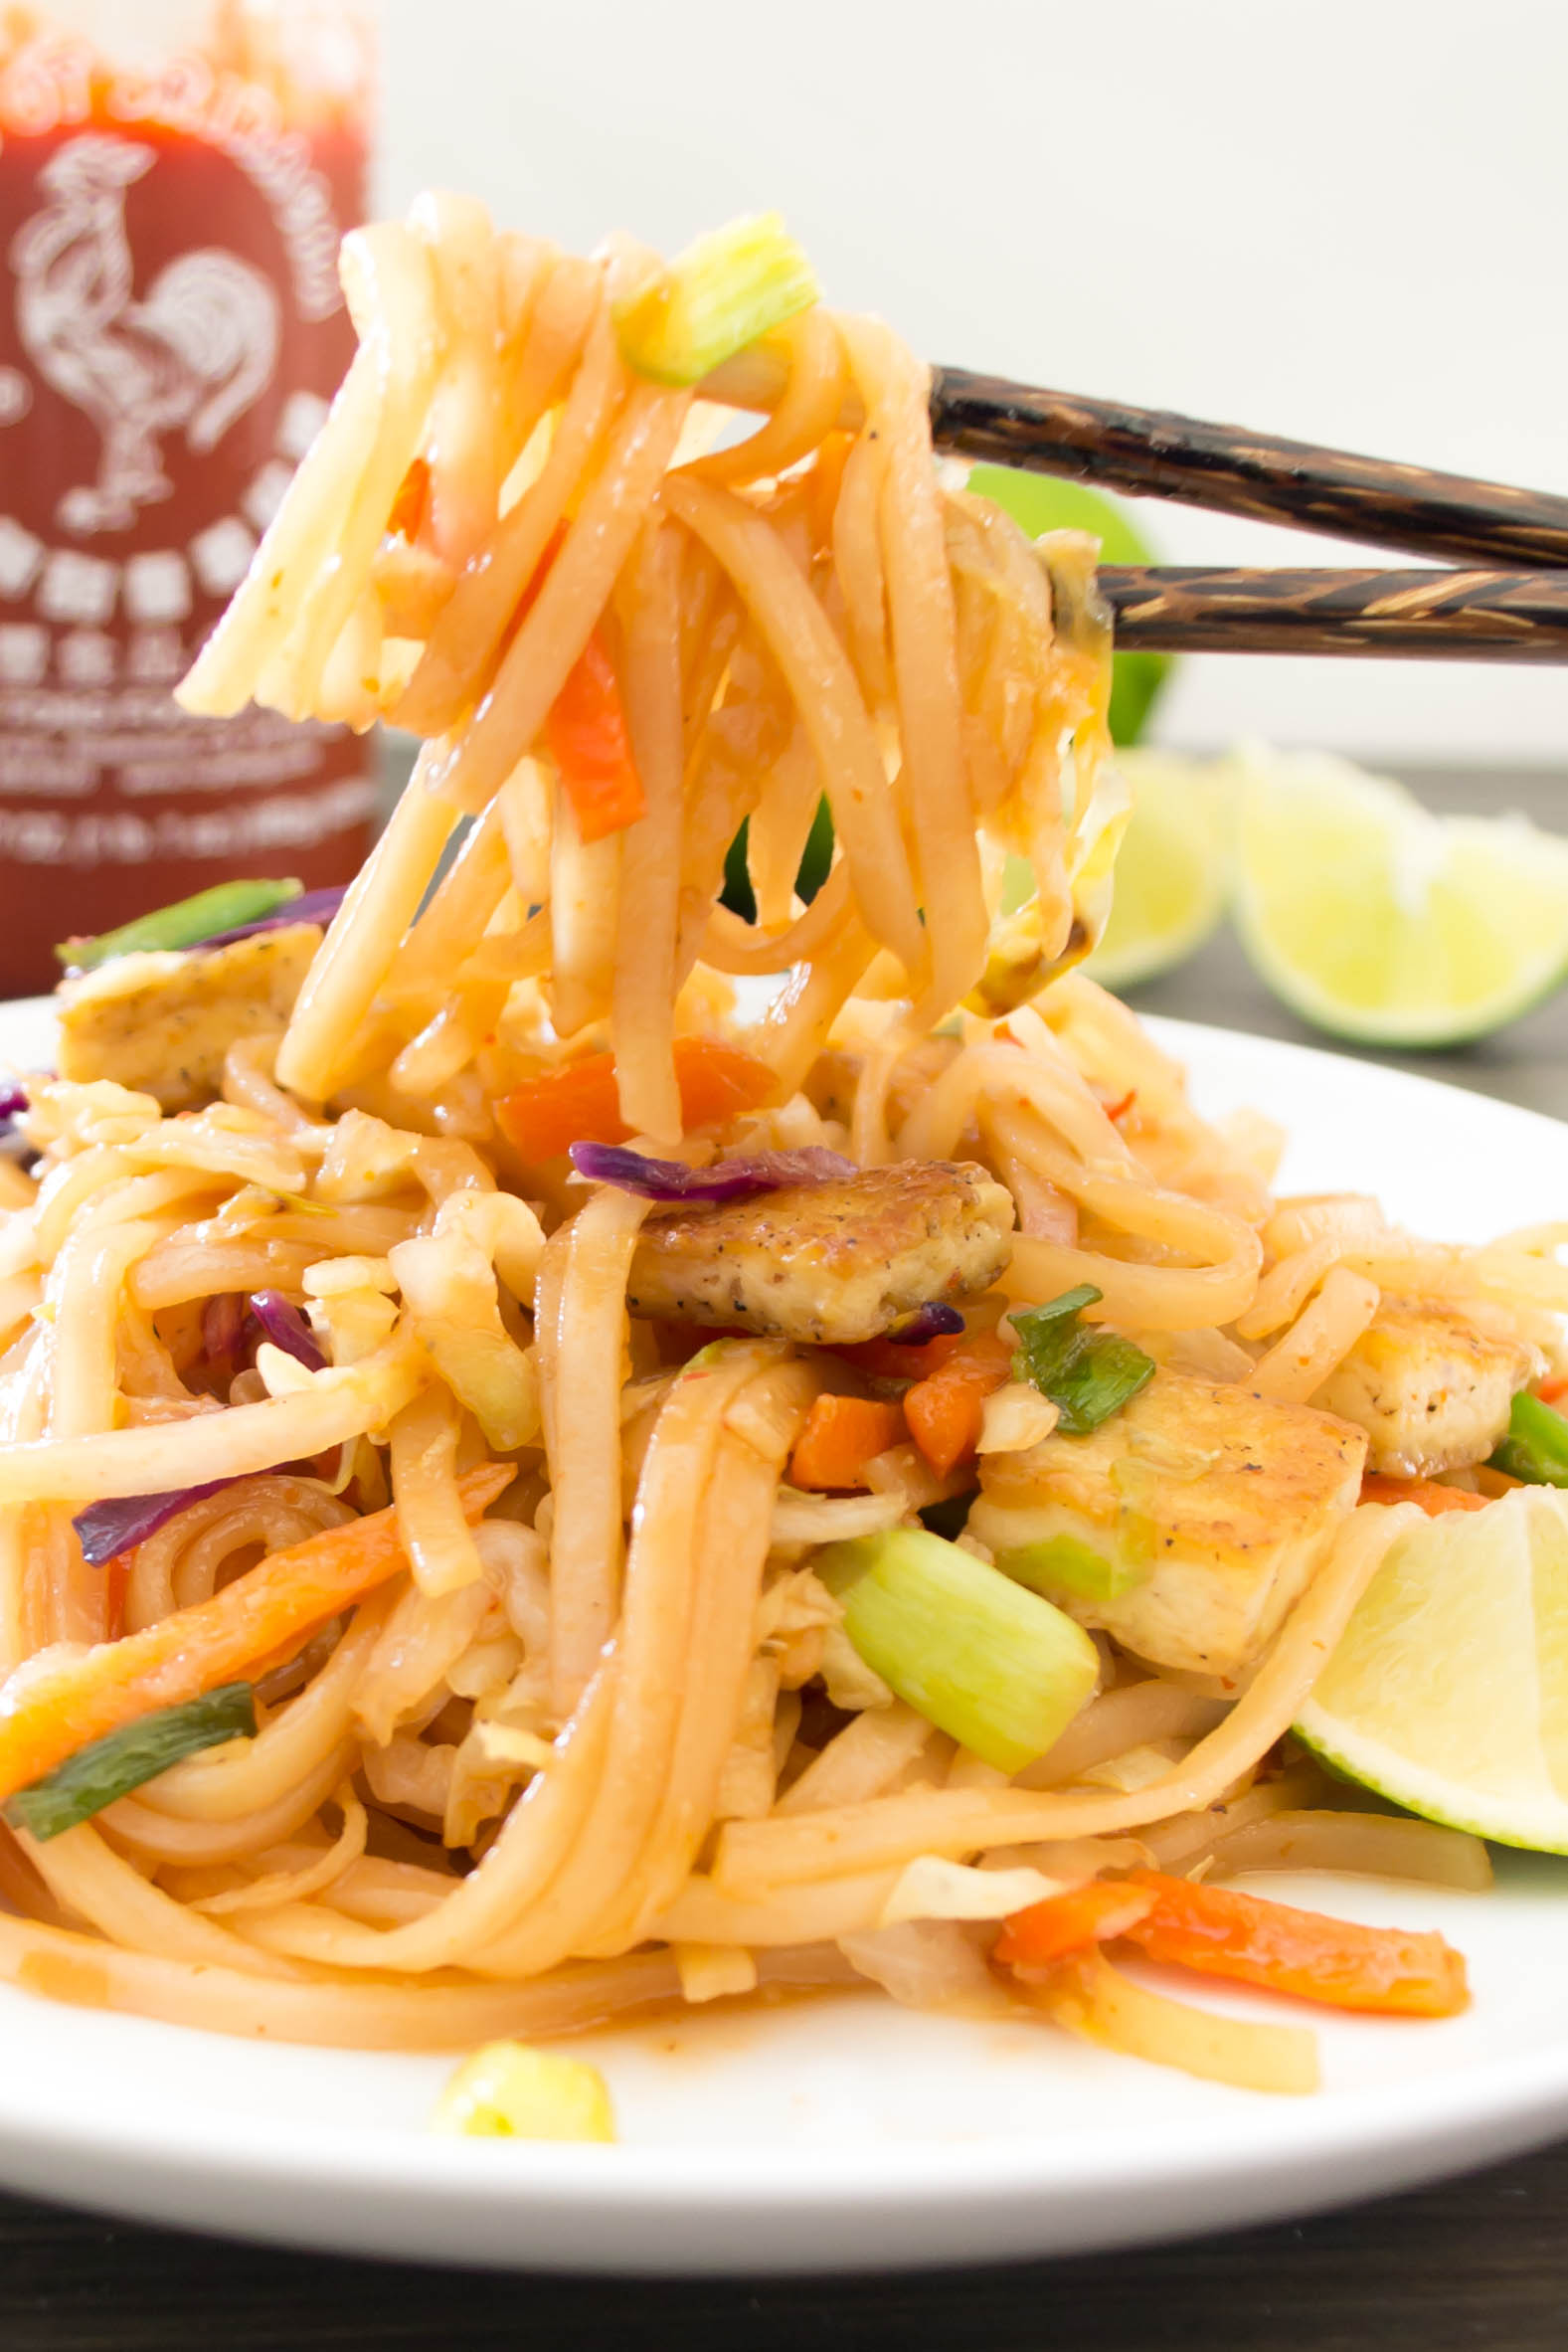 This Spicy Asian Noodle dish is sophisticated and flavorful. The ...